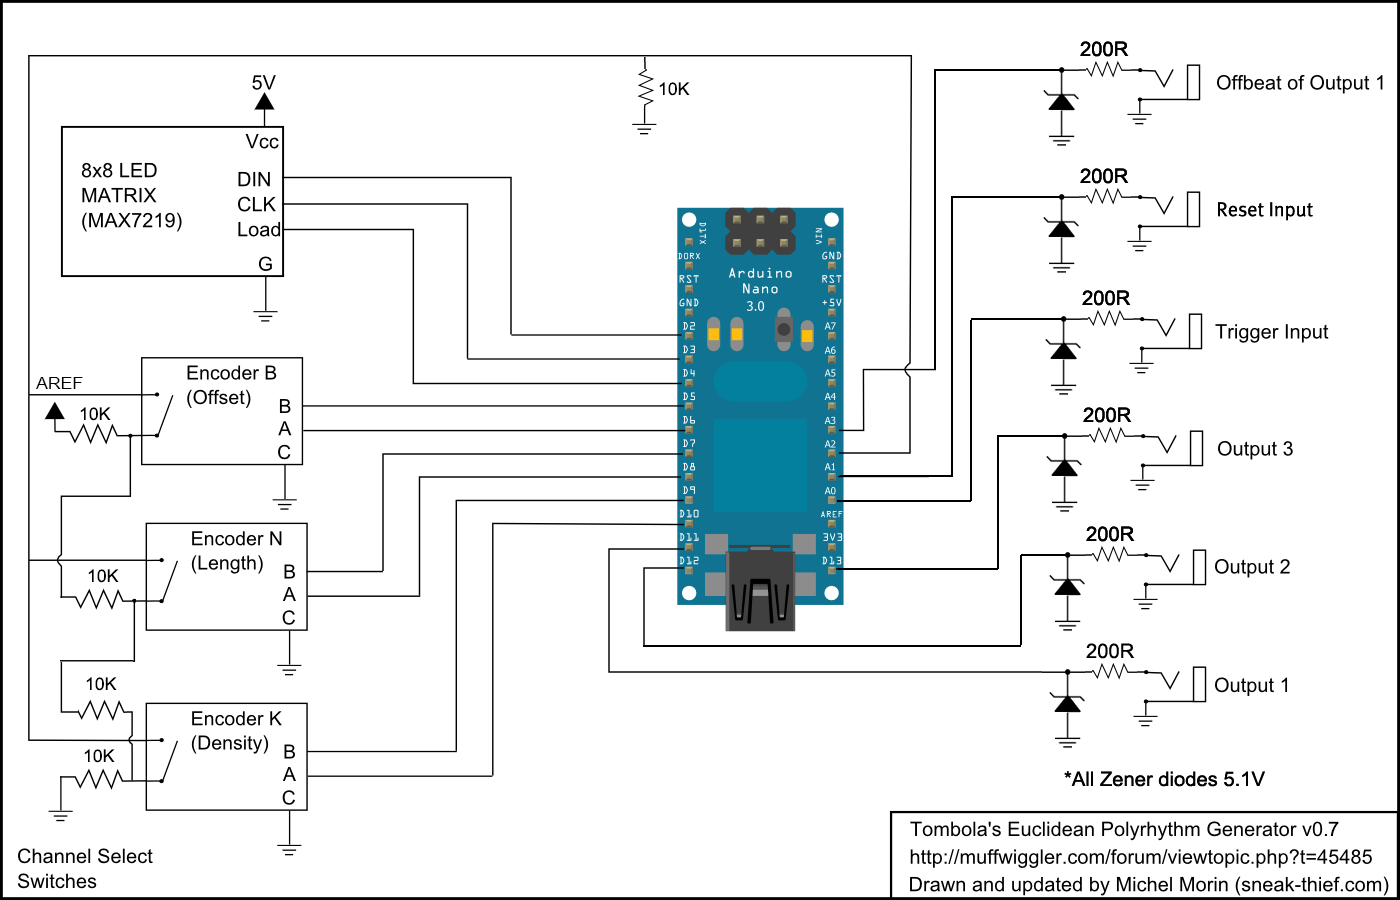 View Topic Diy Euclidean Polyrhythm Generator How To Build A Rotary Encoder Circuit With An Arduino Posted Image Might Have Been Reduced In Size Click Fullscreen